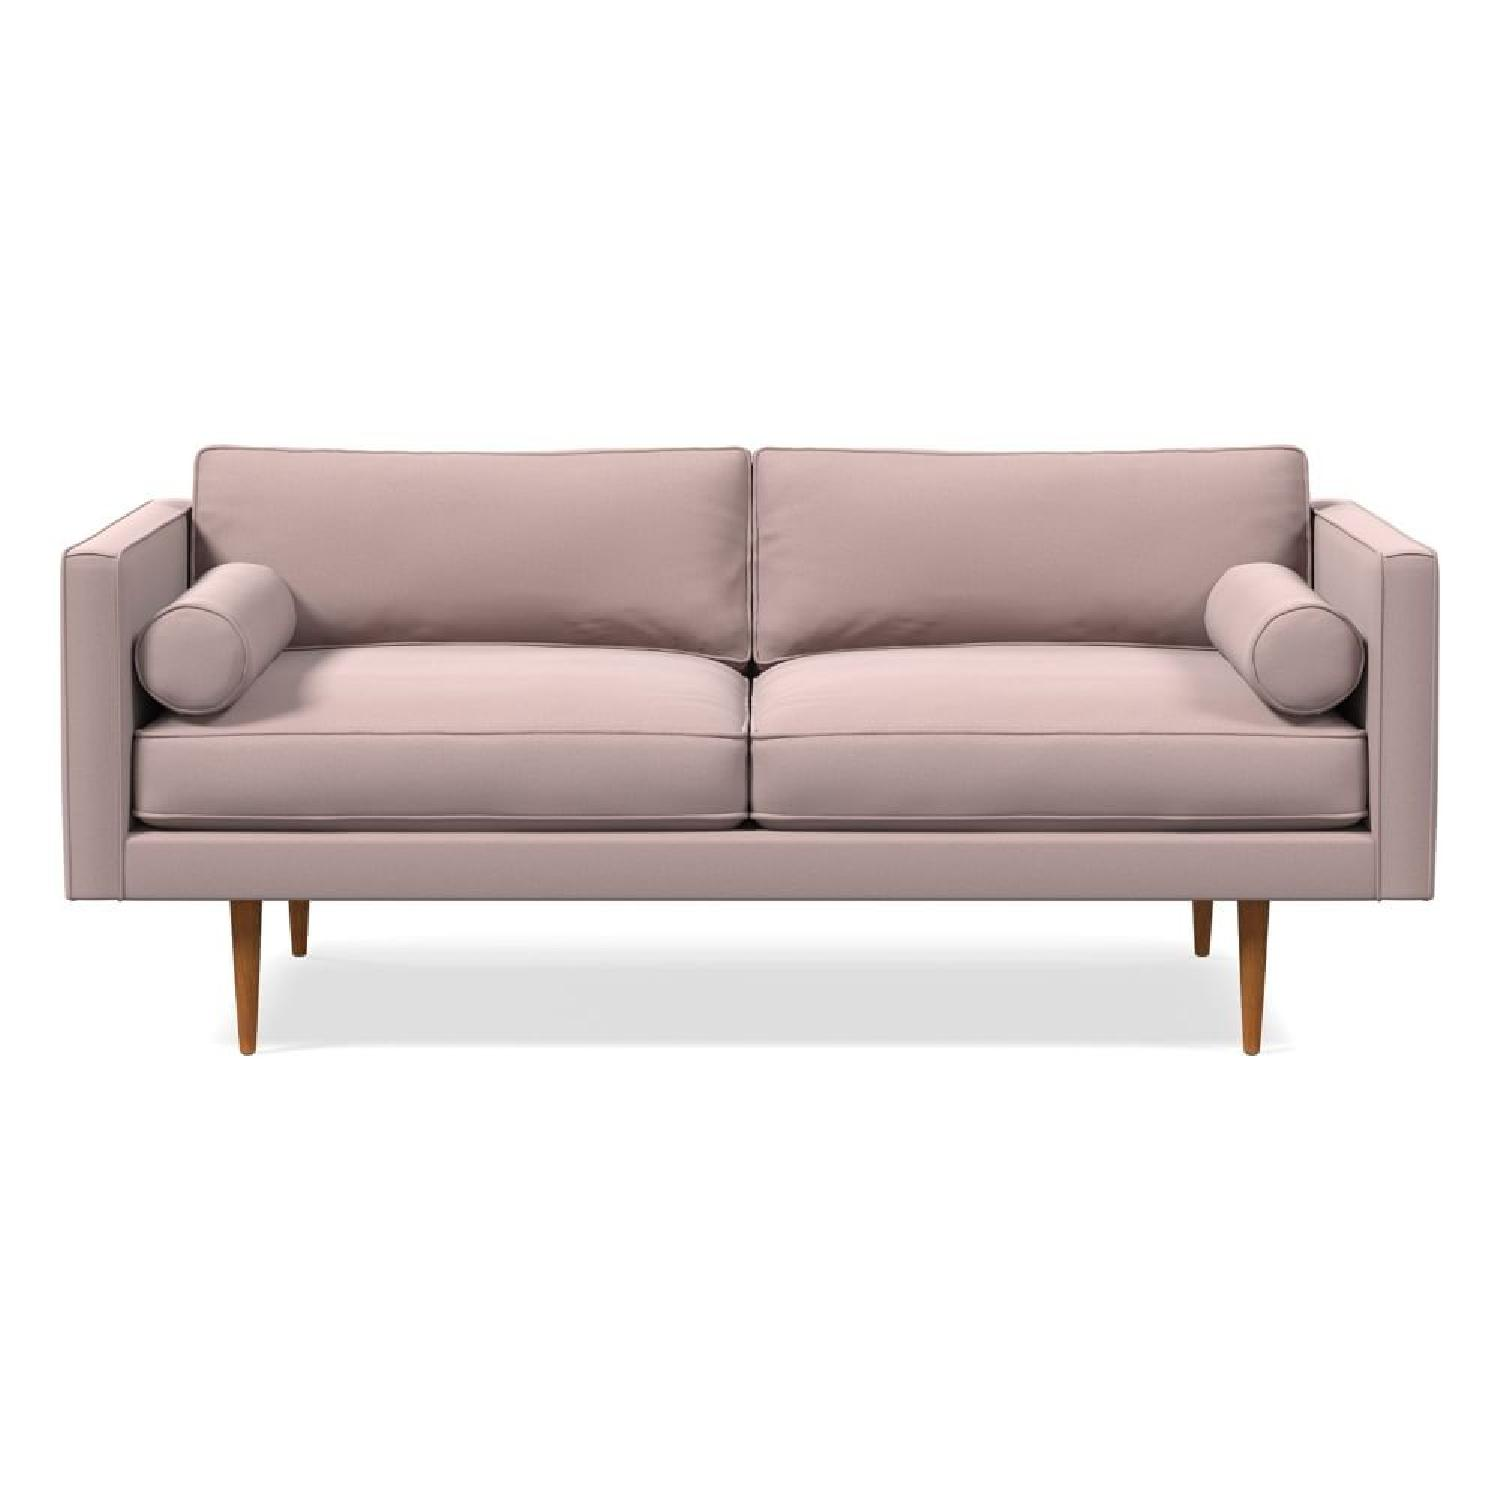 West Elm Monroe Mid-Century Sofa in Blush Velvet